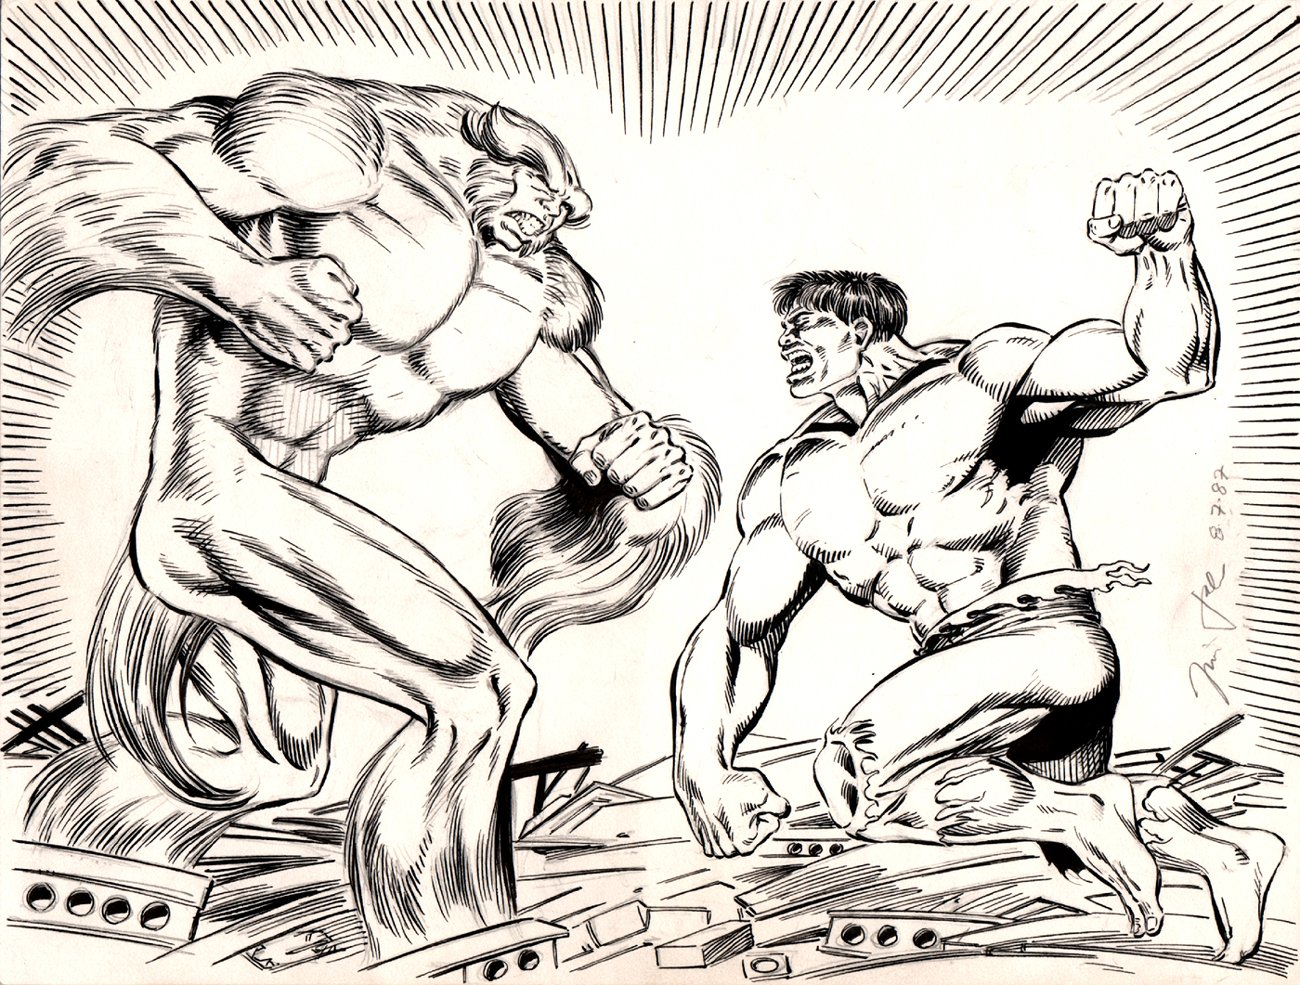 Incredible Hulk vs Sasquatch Penciled & Inked Pinup (1987)